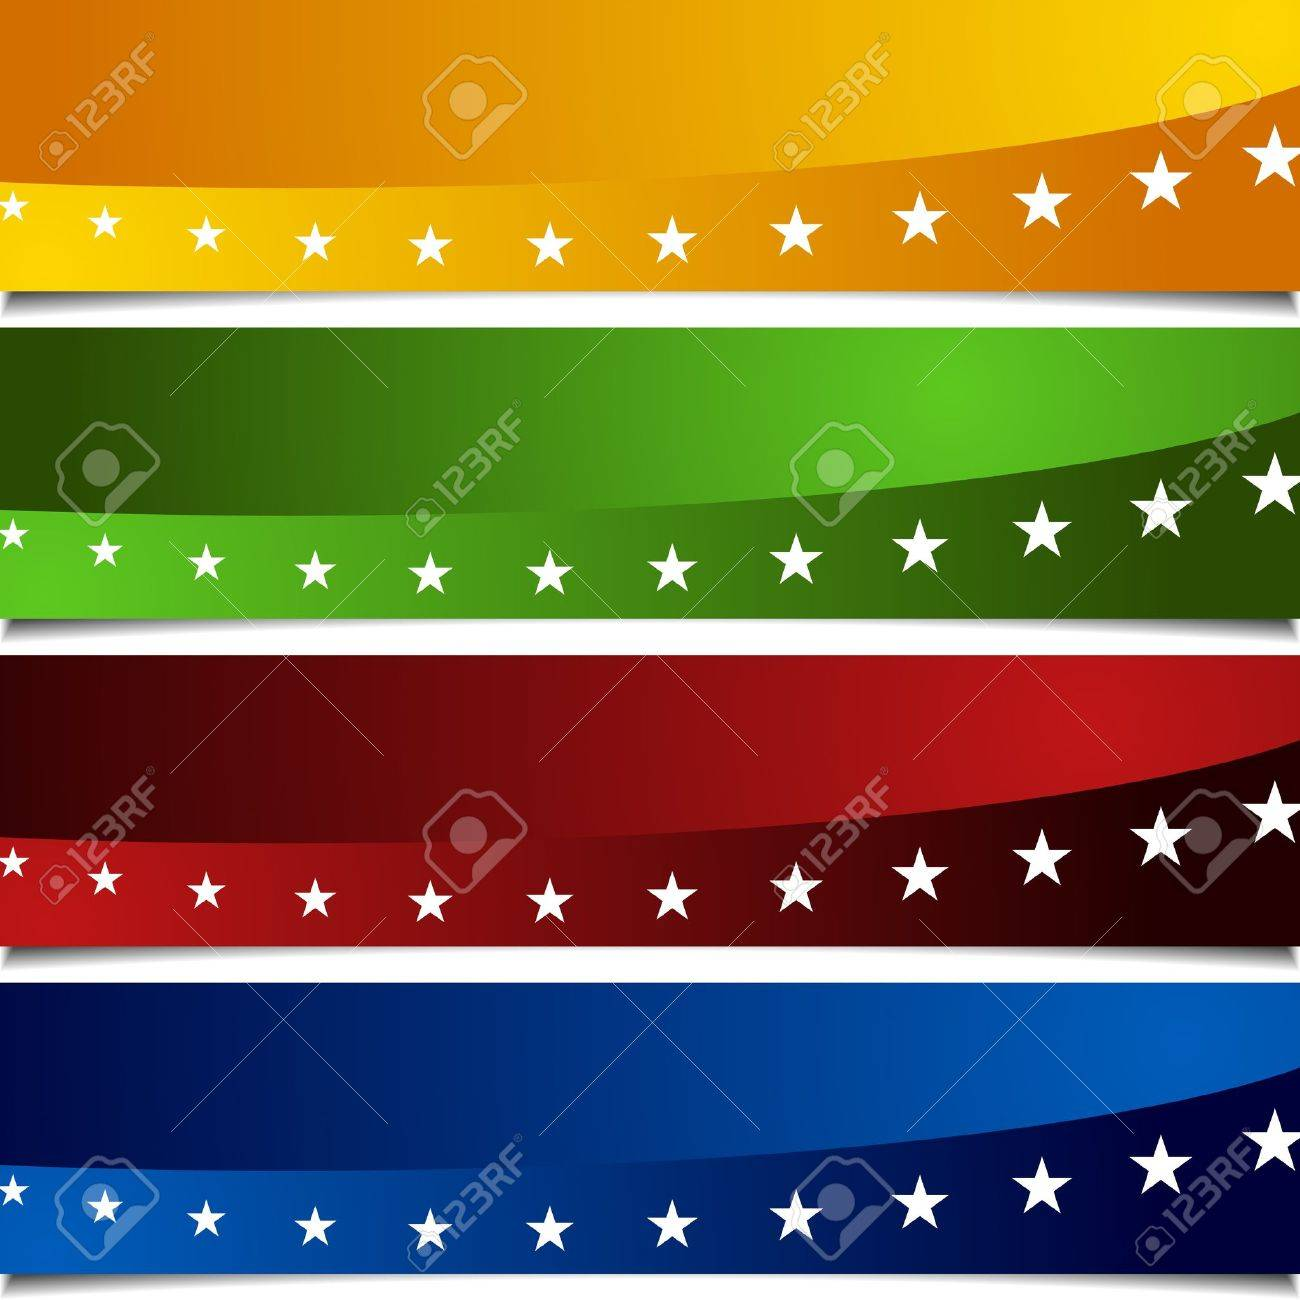 An image of a page peel patriotic banners Stock Vector - 9377683